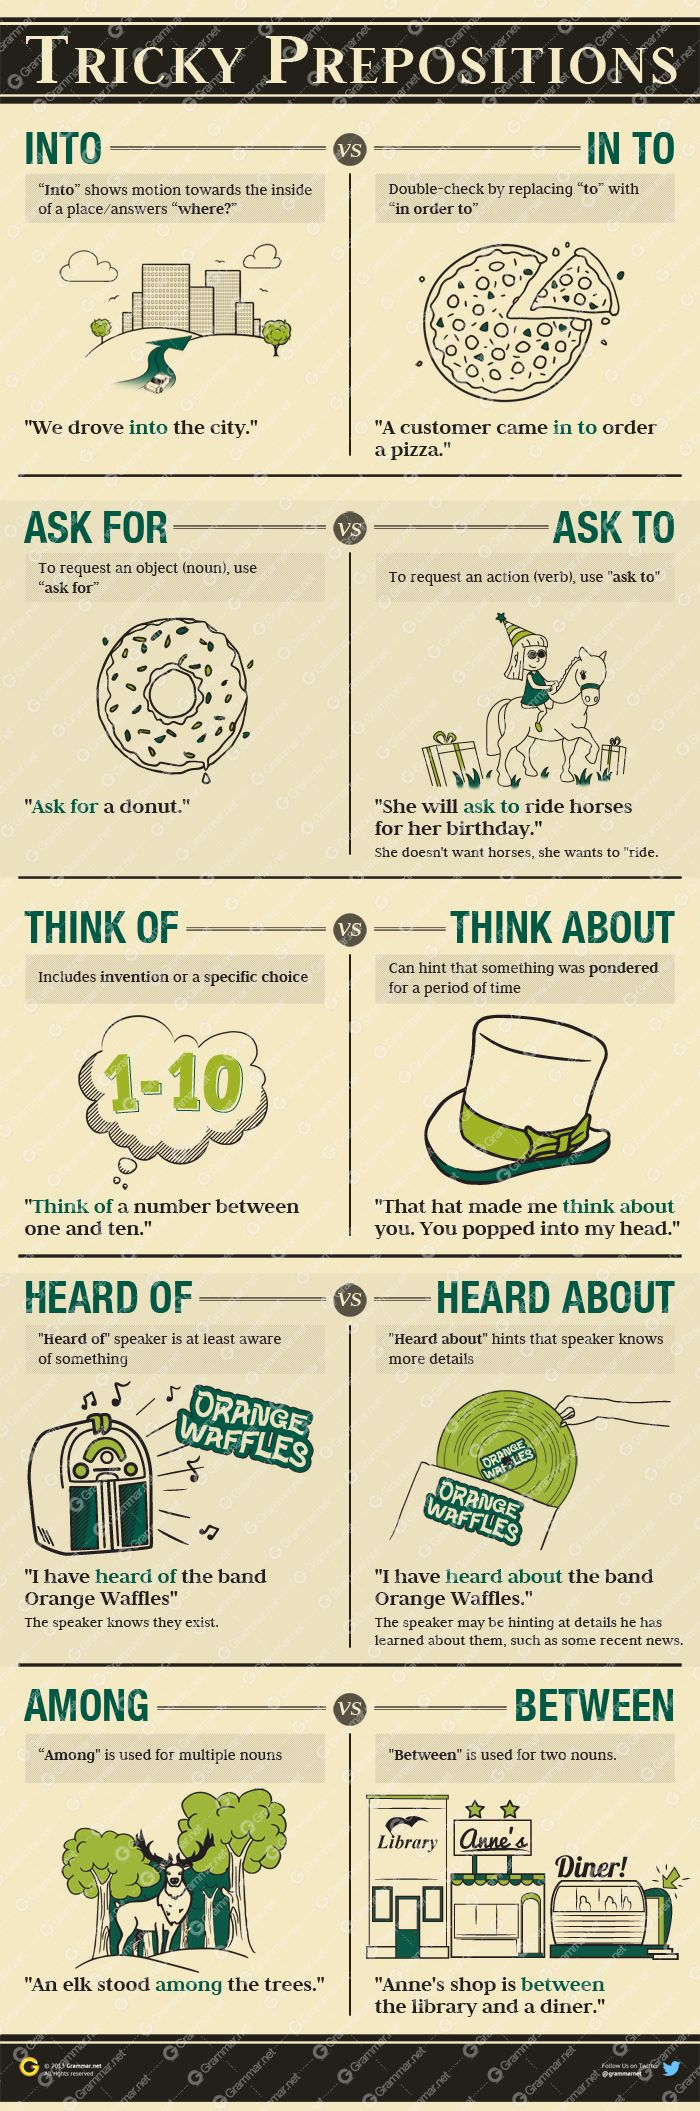 best ideas about english grammar rules grammar tricky prepositions preposition infographic photo